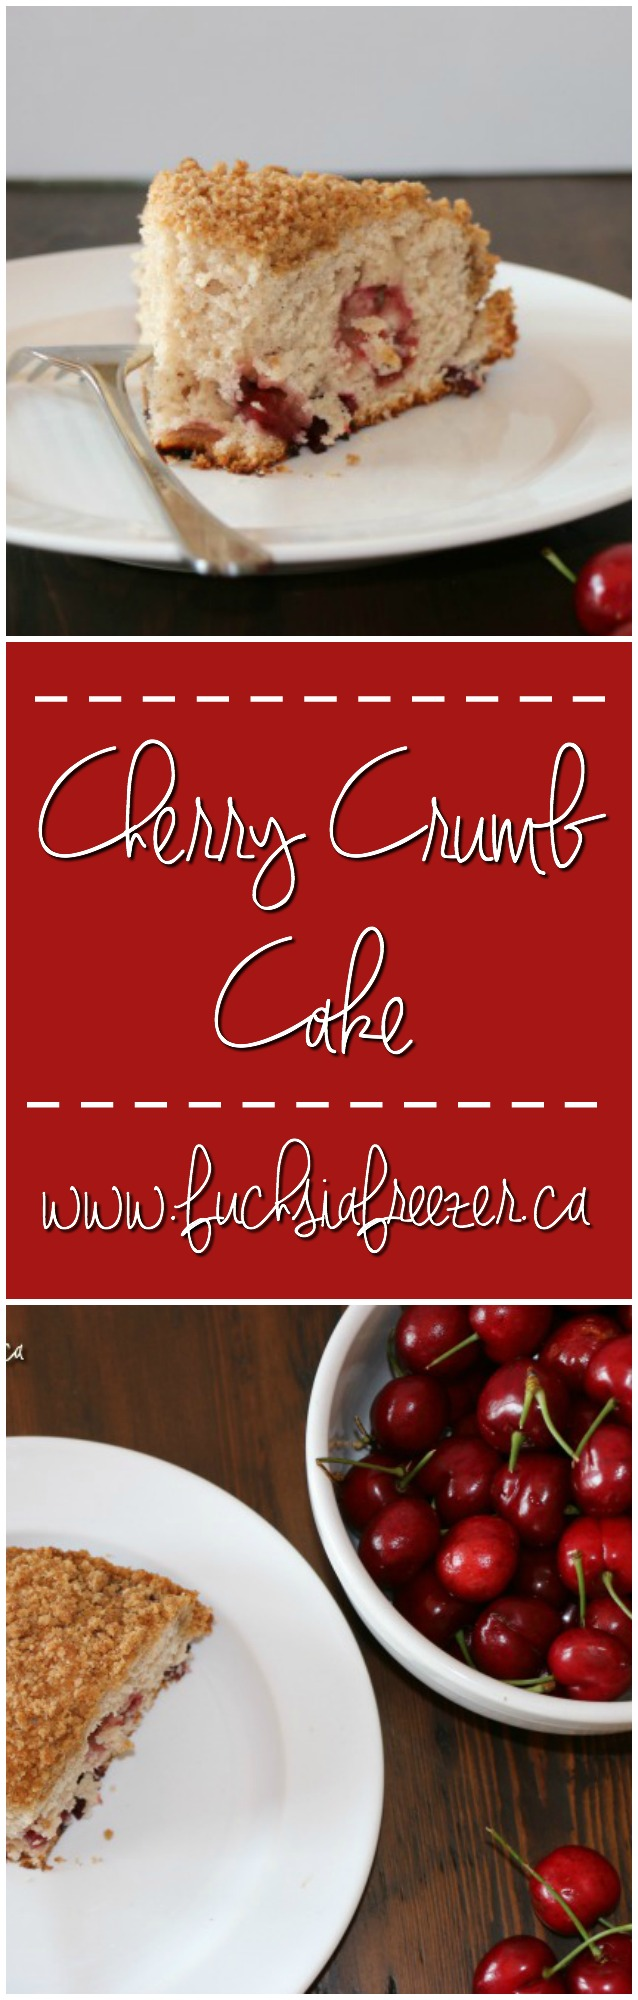 Delicious Cherry Crumb Cake. Take a moment for yourself and enjoy this sweet treat with a cup of coffee or tea today!